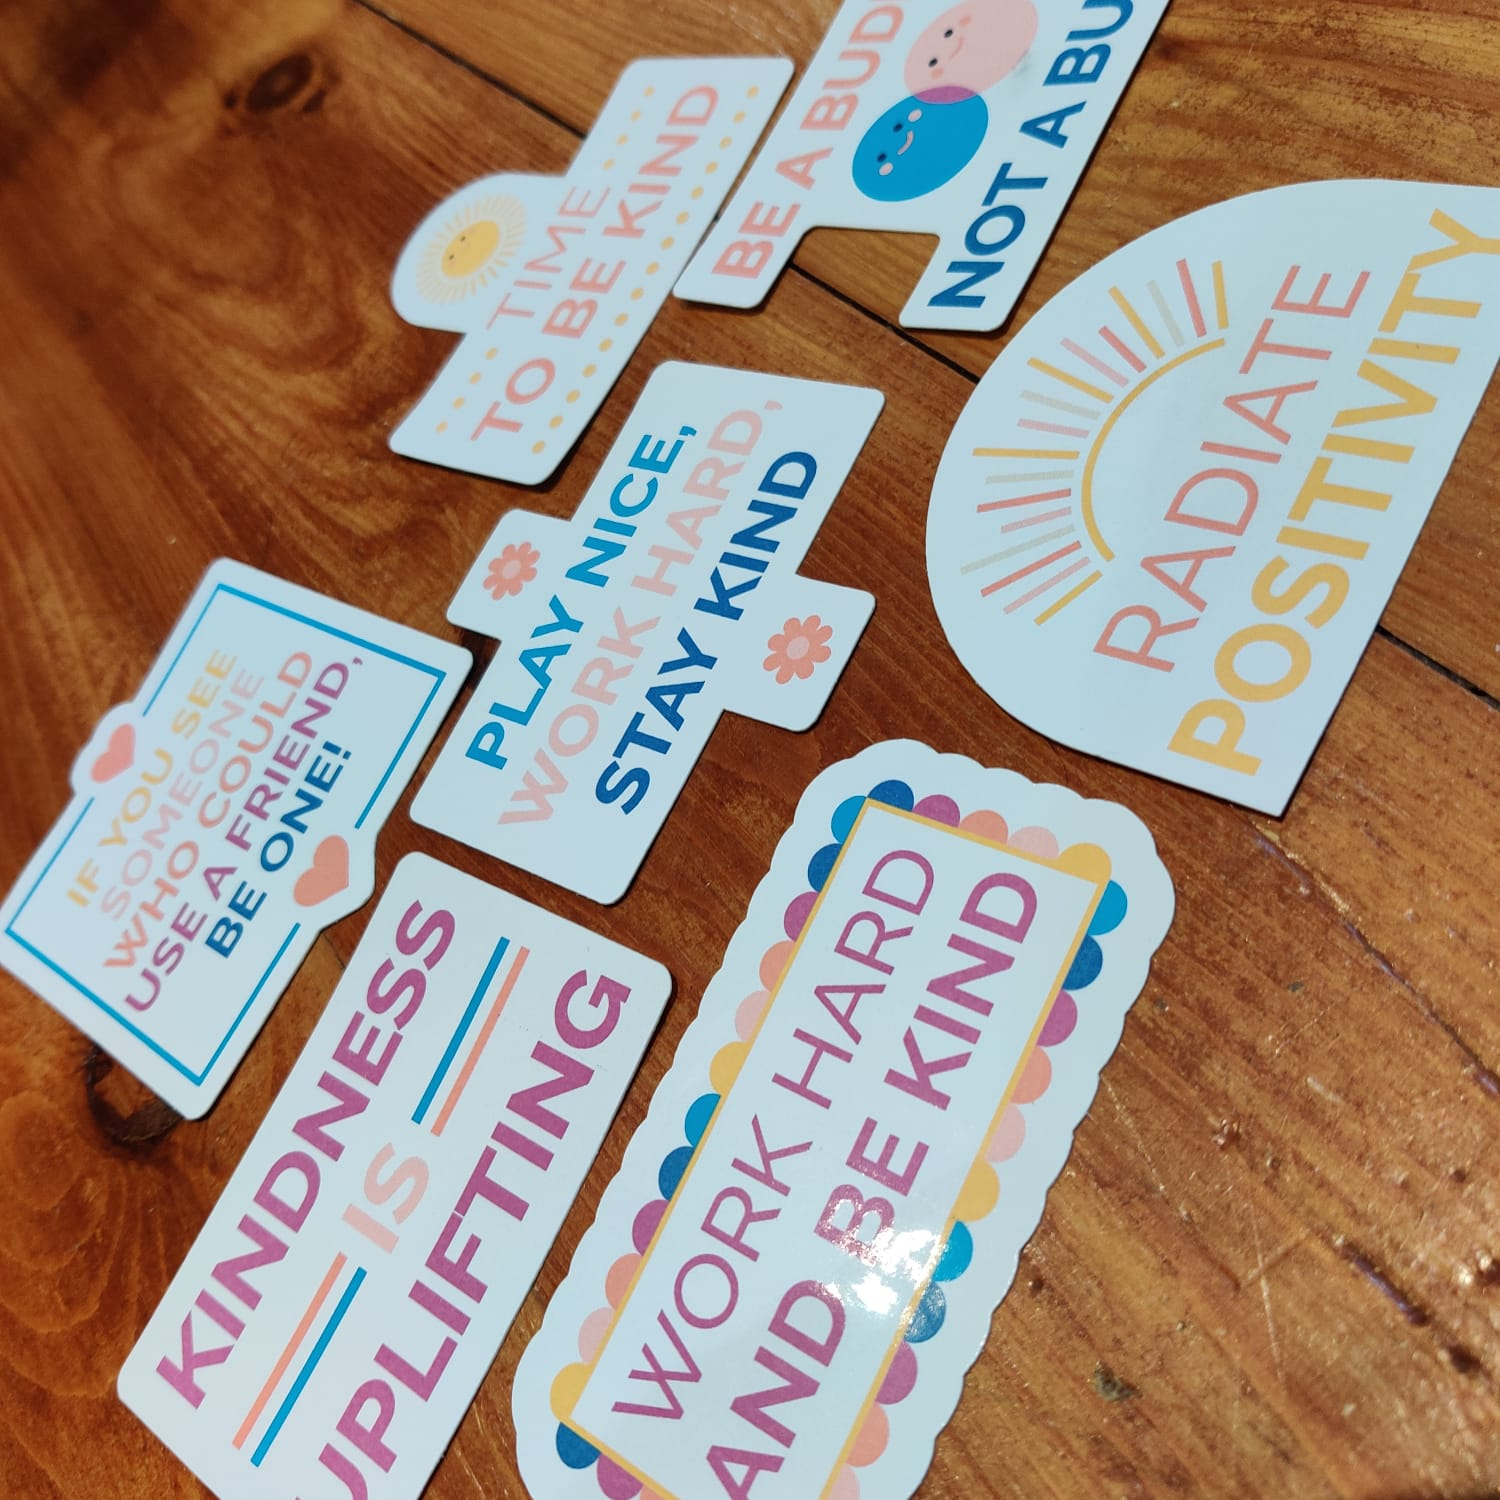 Kindness Positive Stickers   Mental Health Support   Positive Reminder   Encouragement   Positive Stickers   Anxiety   Charity Donation Kind Shop 2